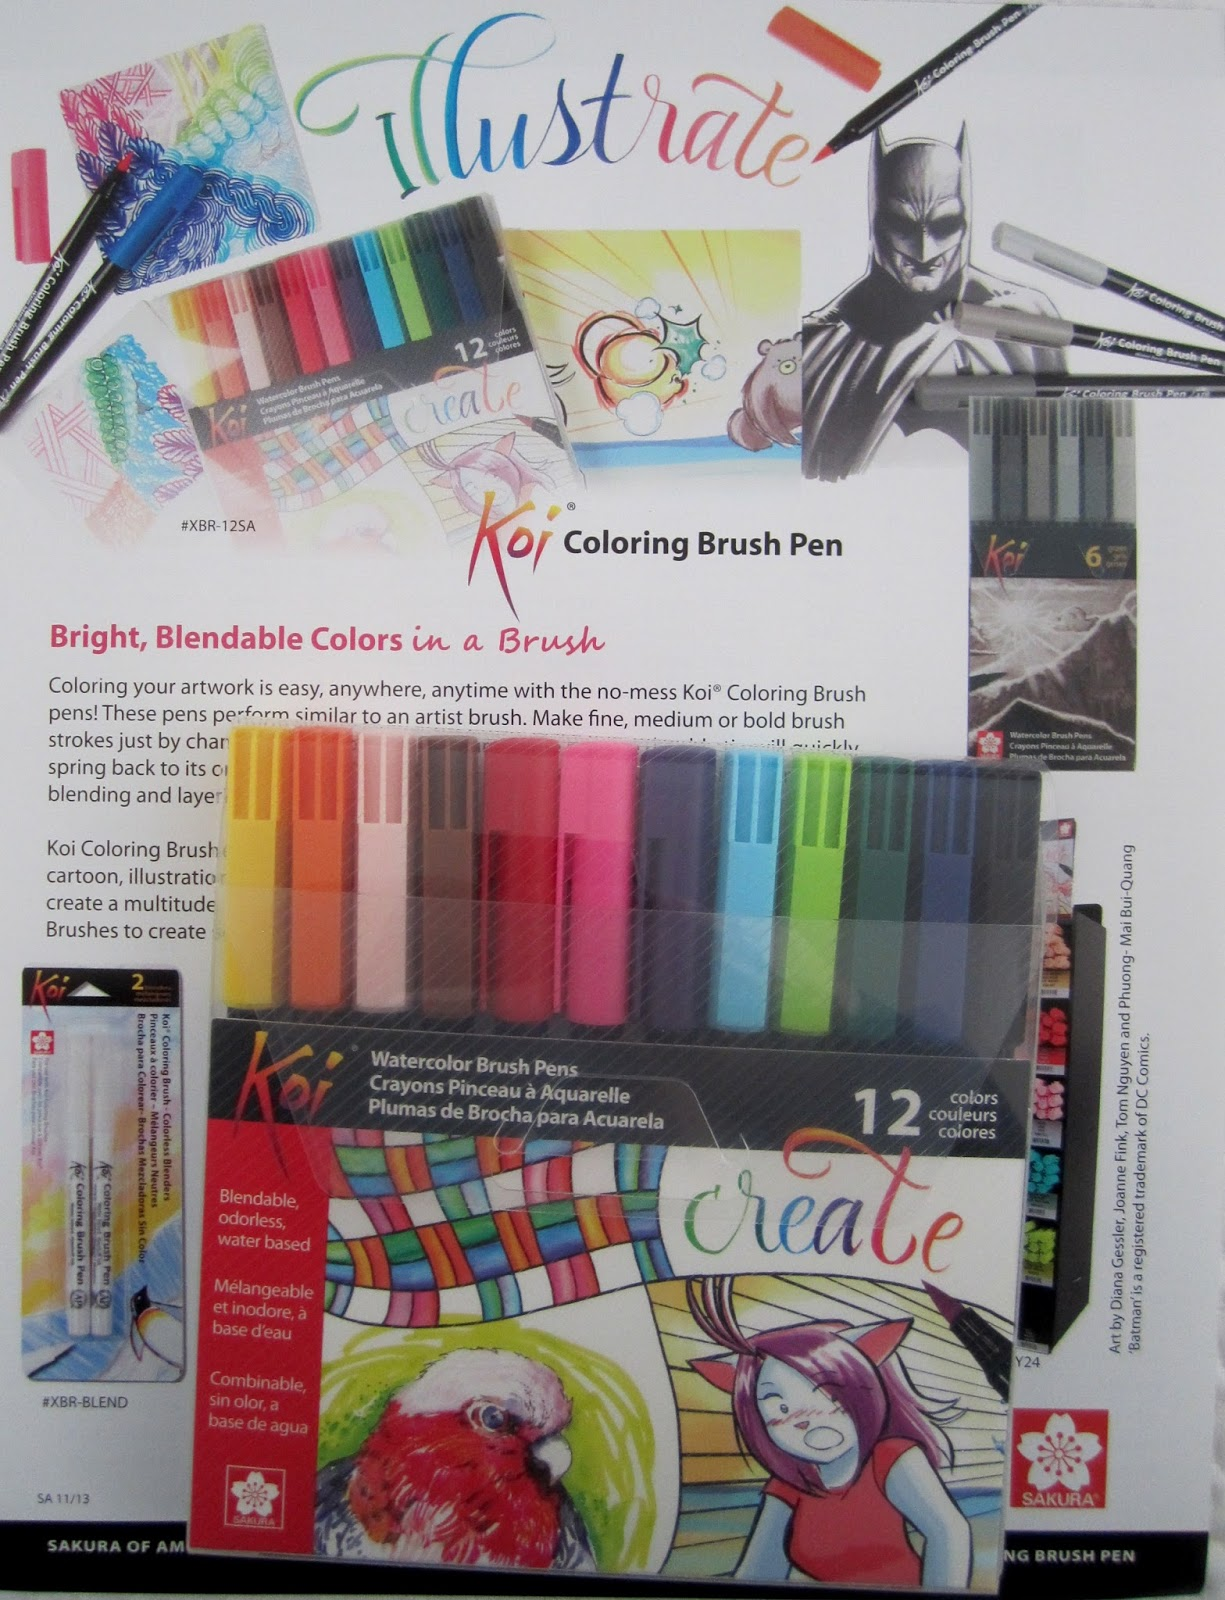 Braces Tangle Pattern & Koi Coloring Brush Pen Set Review ...